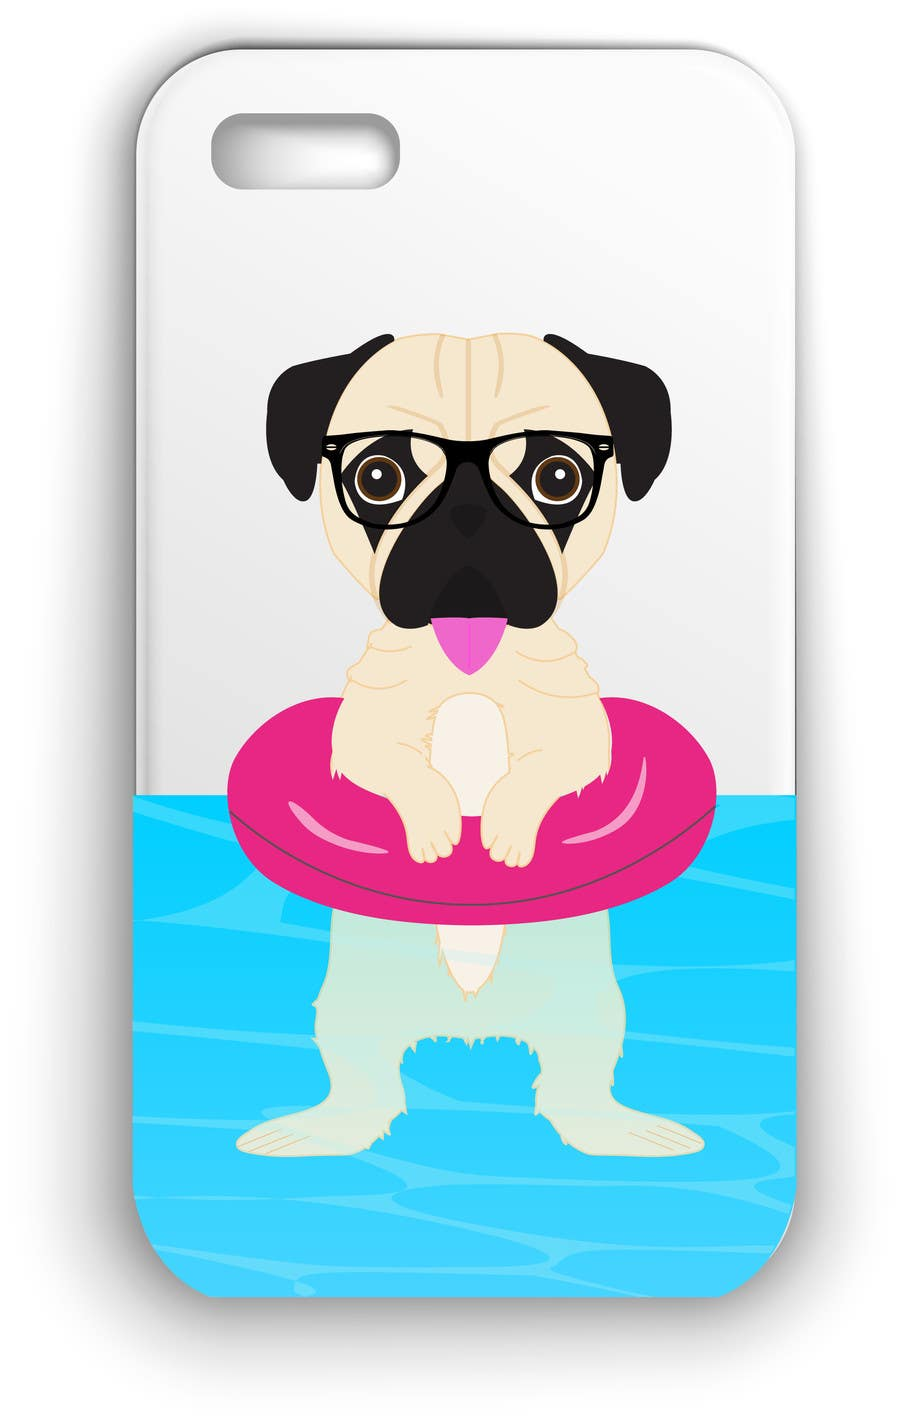 Proposition n°15 du concours Swimming Pug Illustration Required